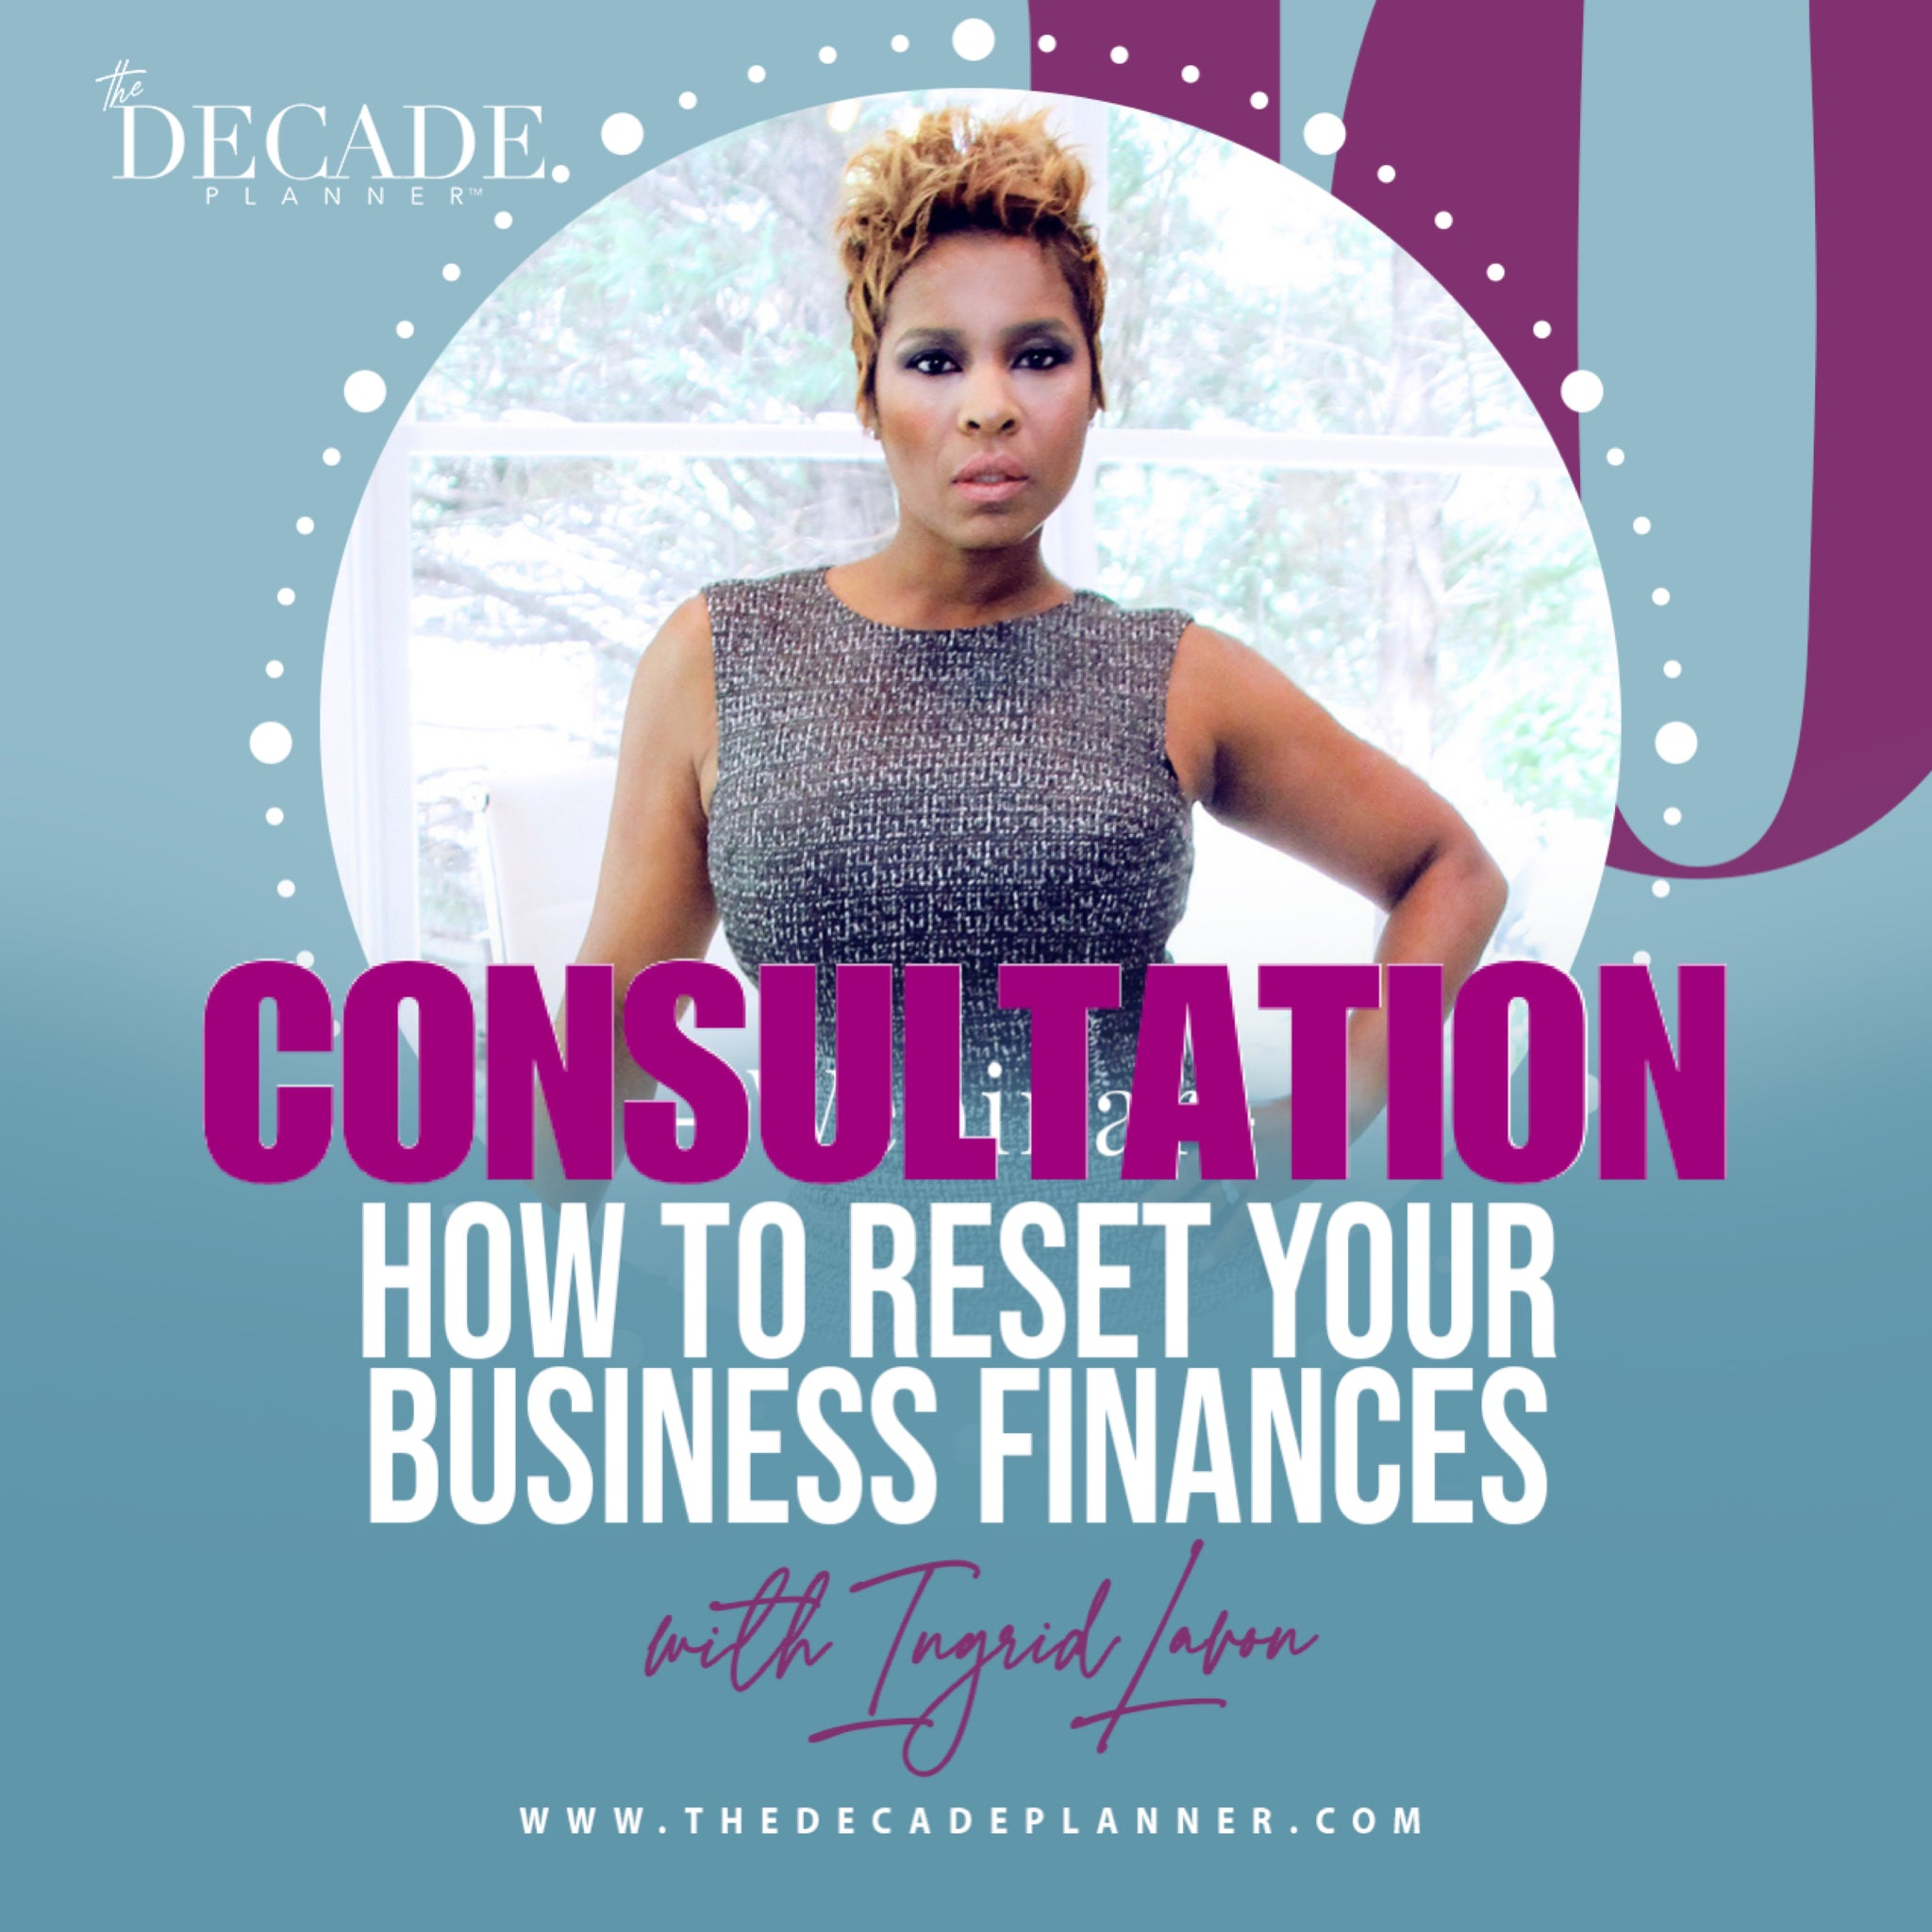 Business Financial Consultation